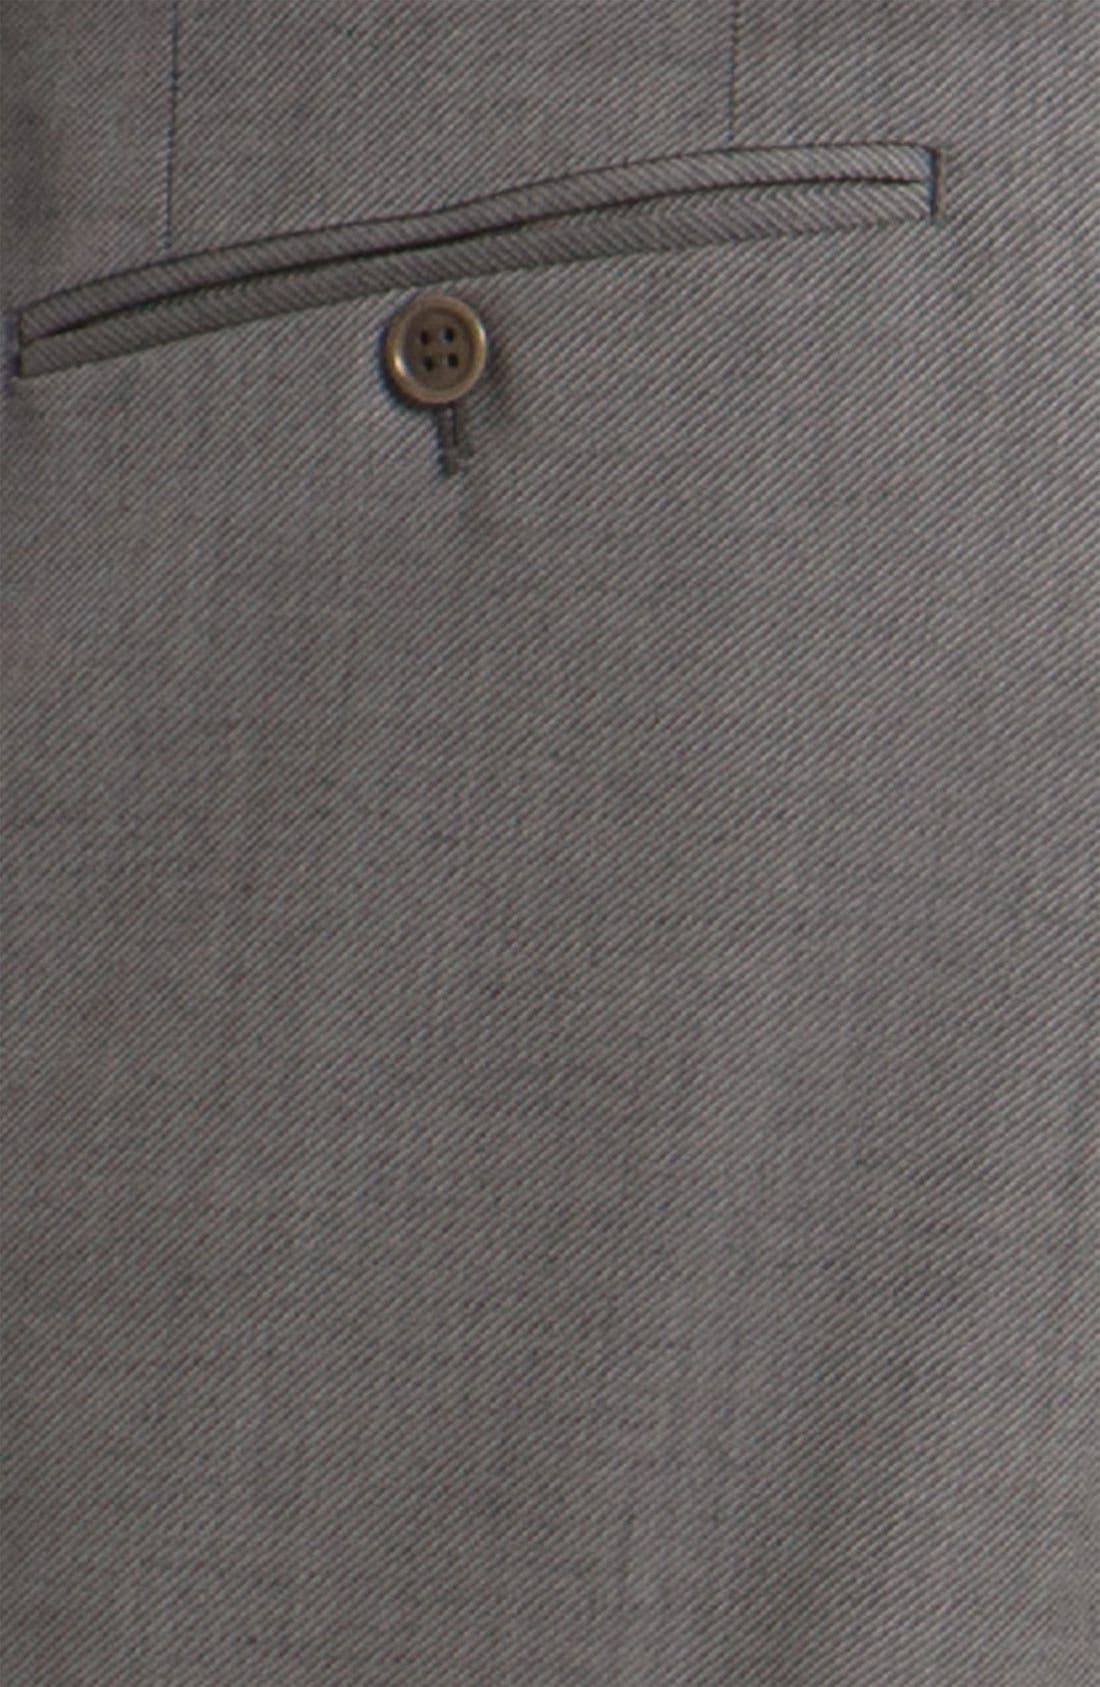 Flat Front Wool Trousers,                             Alternate thumbnail 3, color,                             GREY